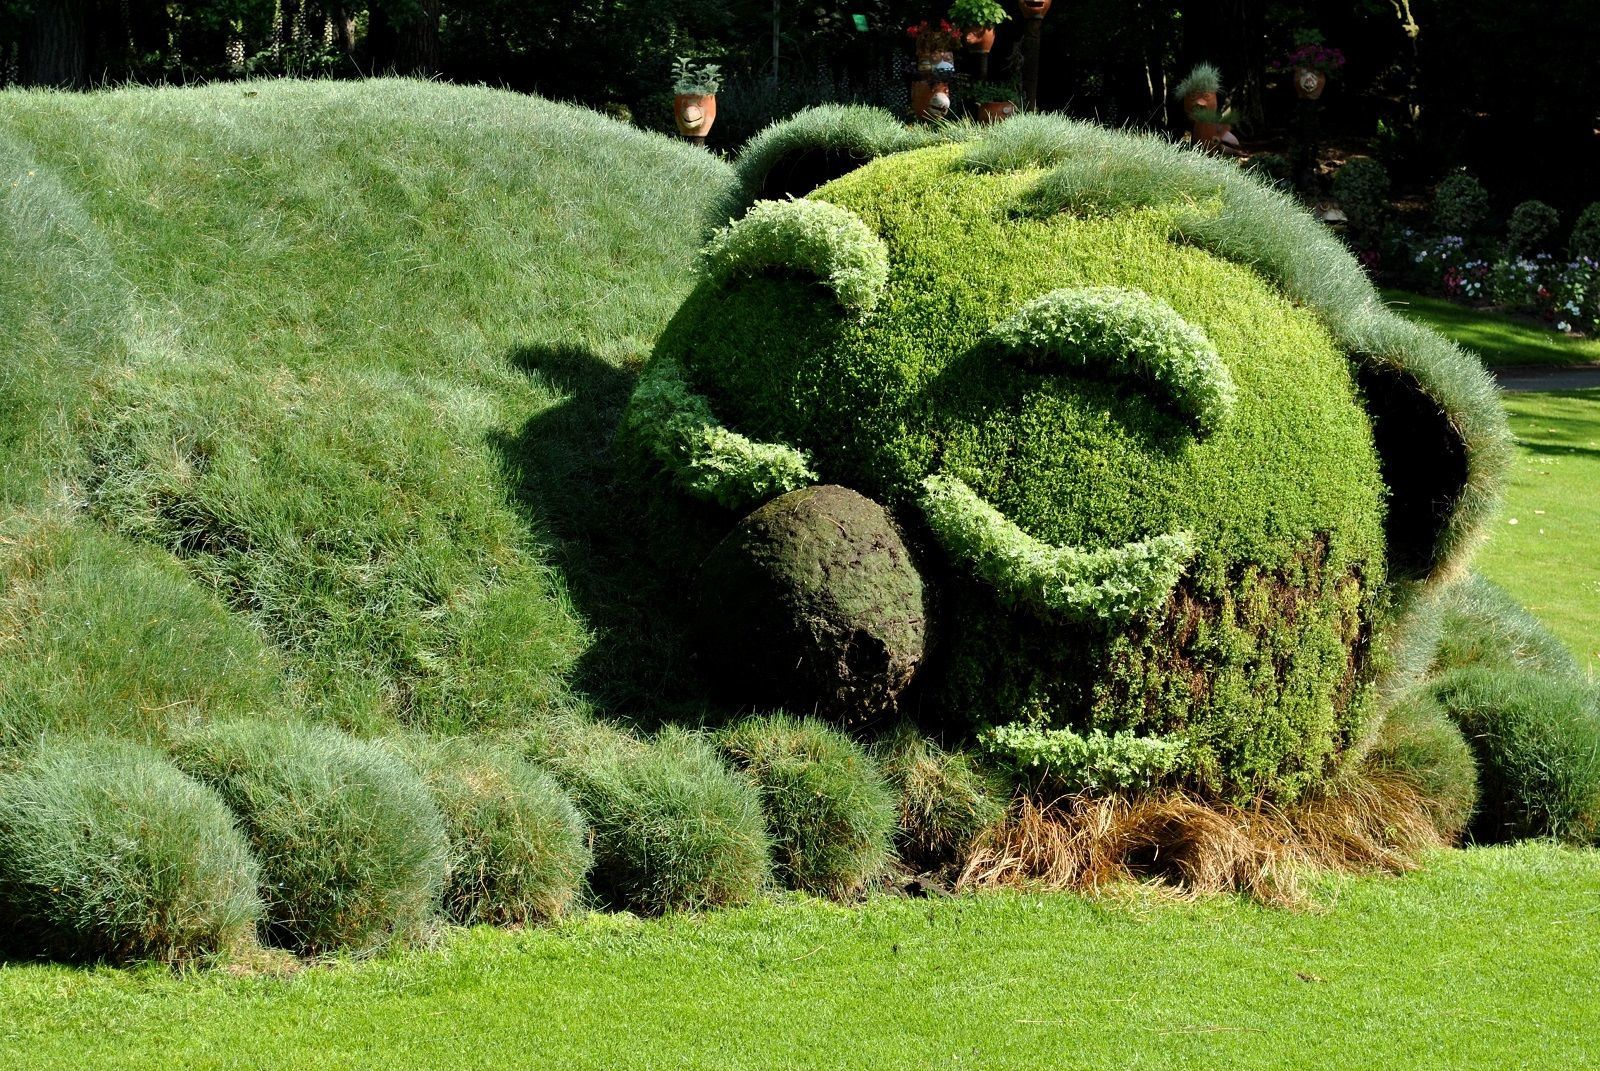 Article du jour: Jardin des plantes de Nantes. - PAROLES D ...